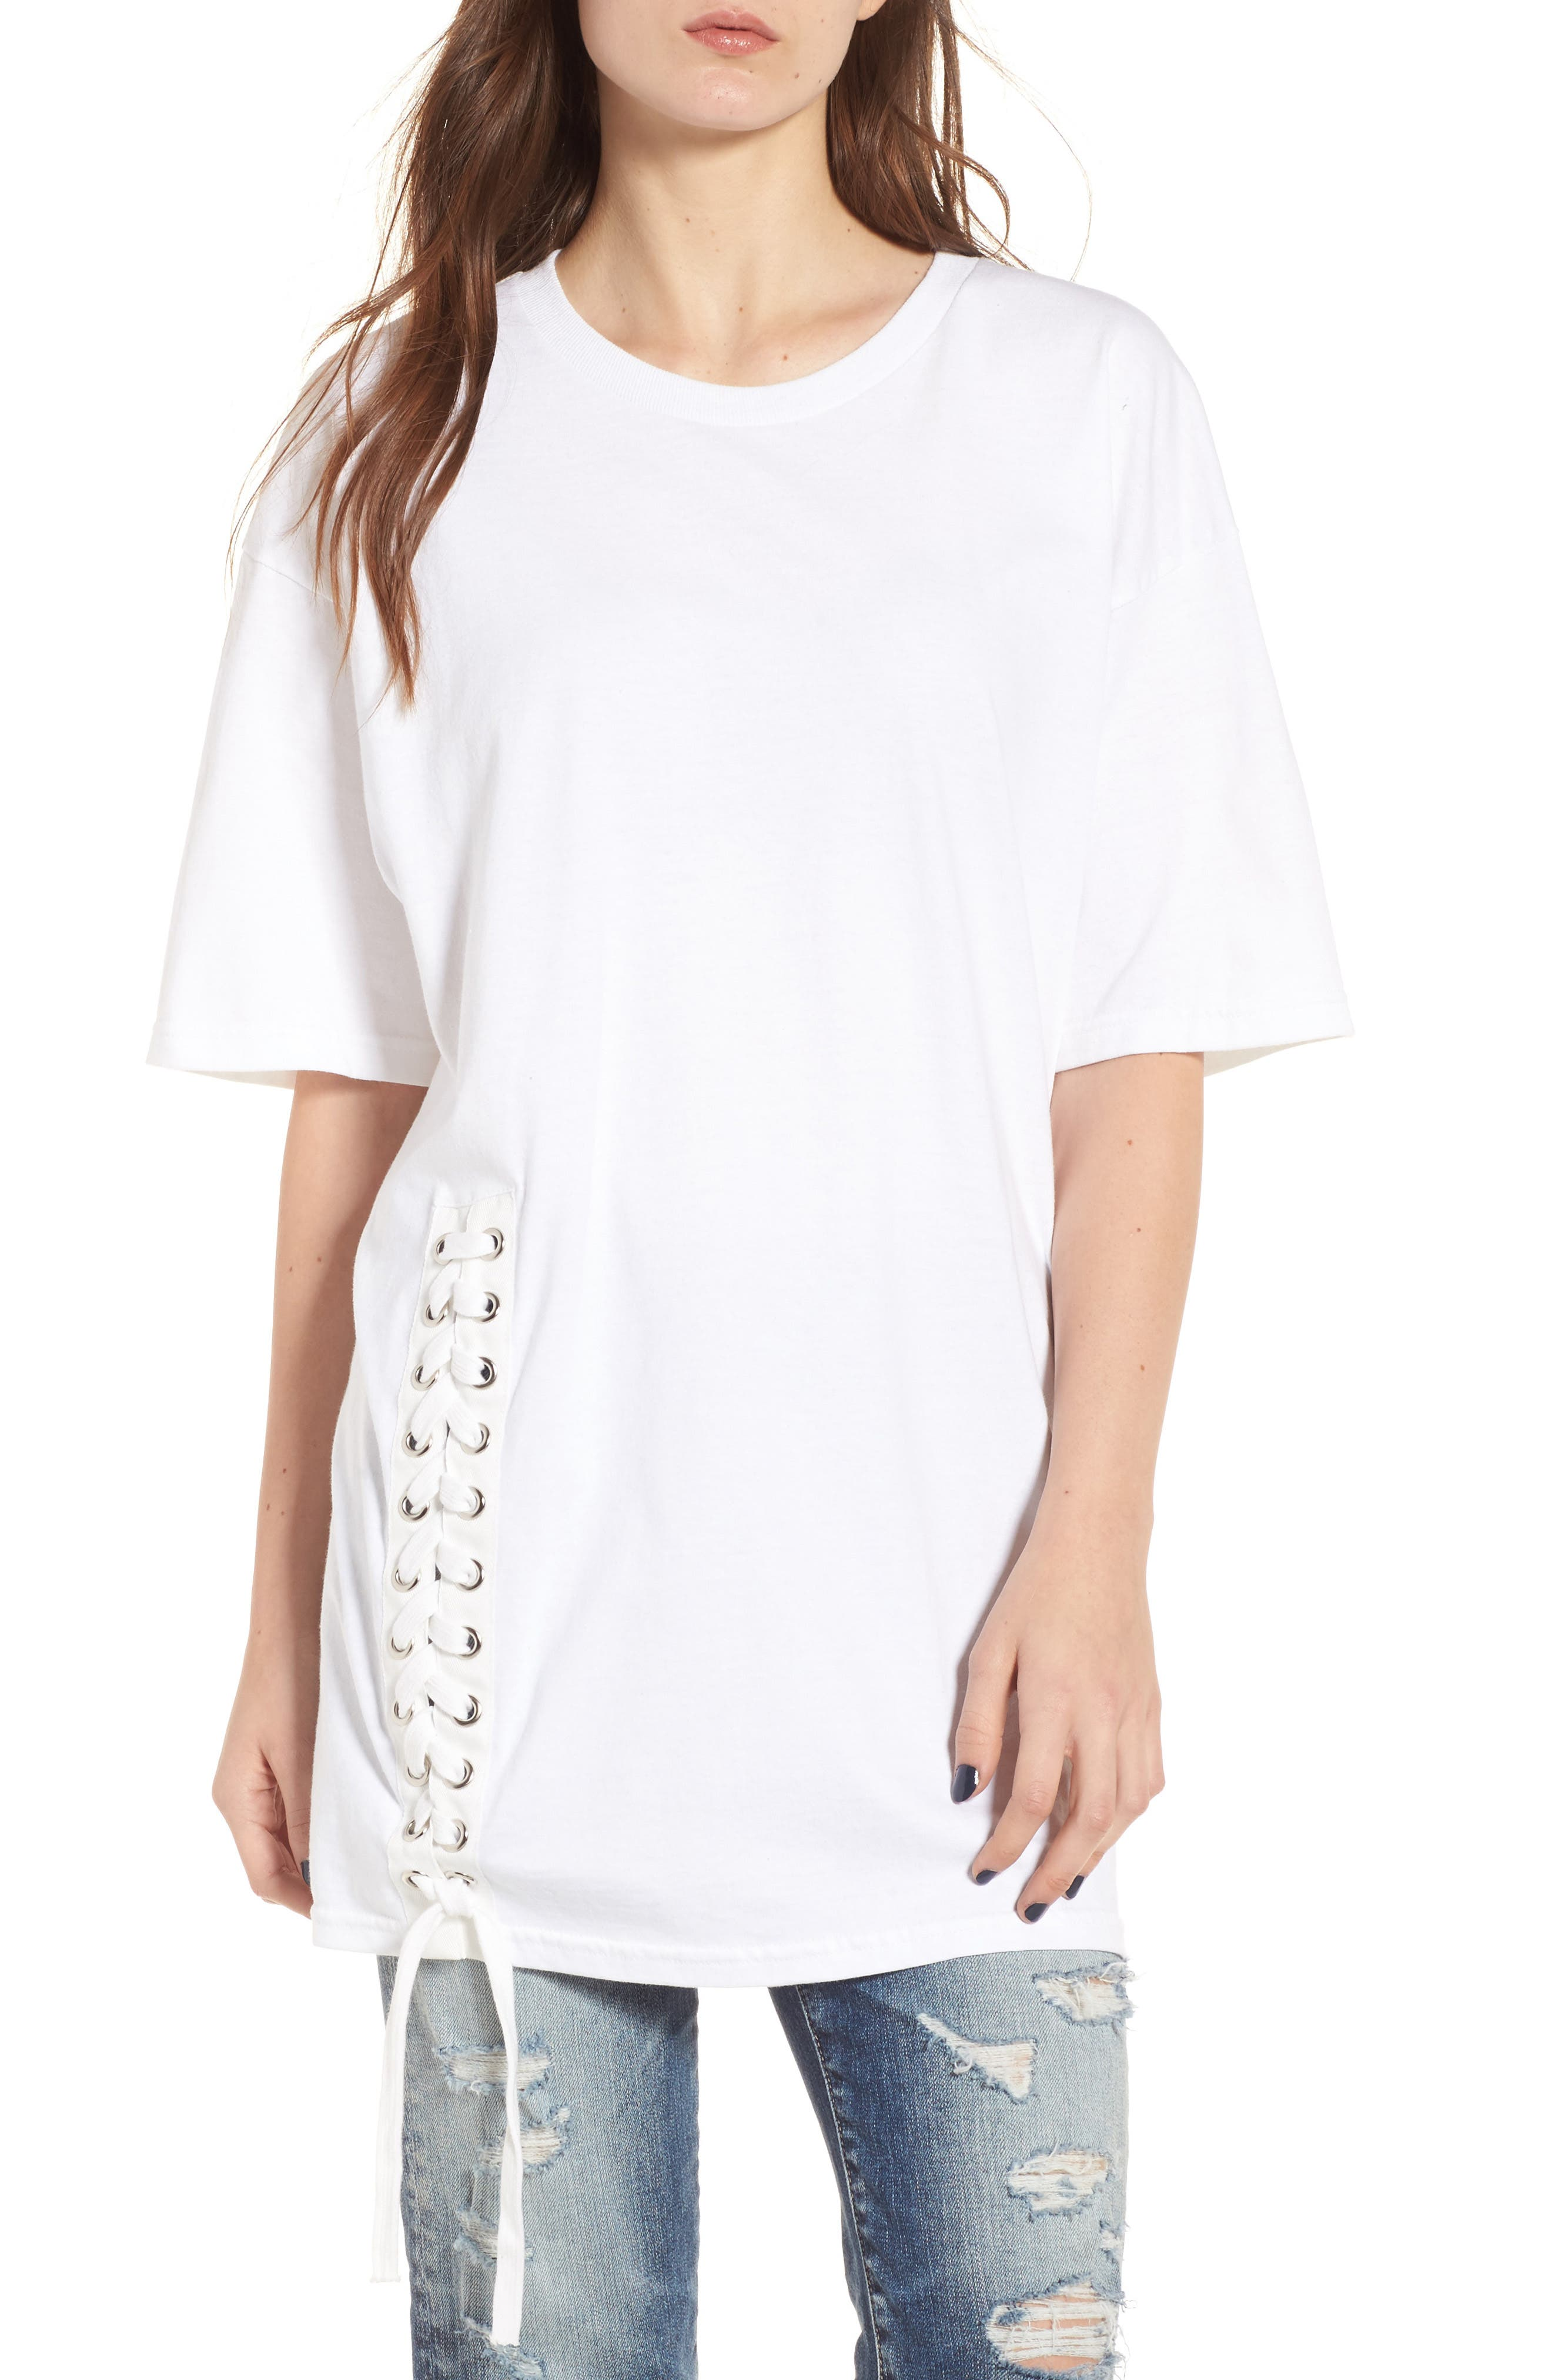 Alternate Image 1 Selected - KENDALL + KYLIE Lace-Up Tee